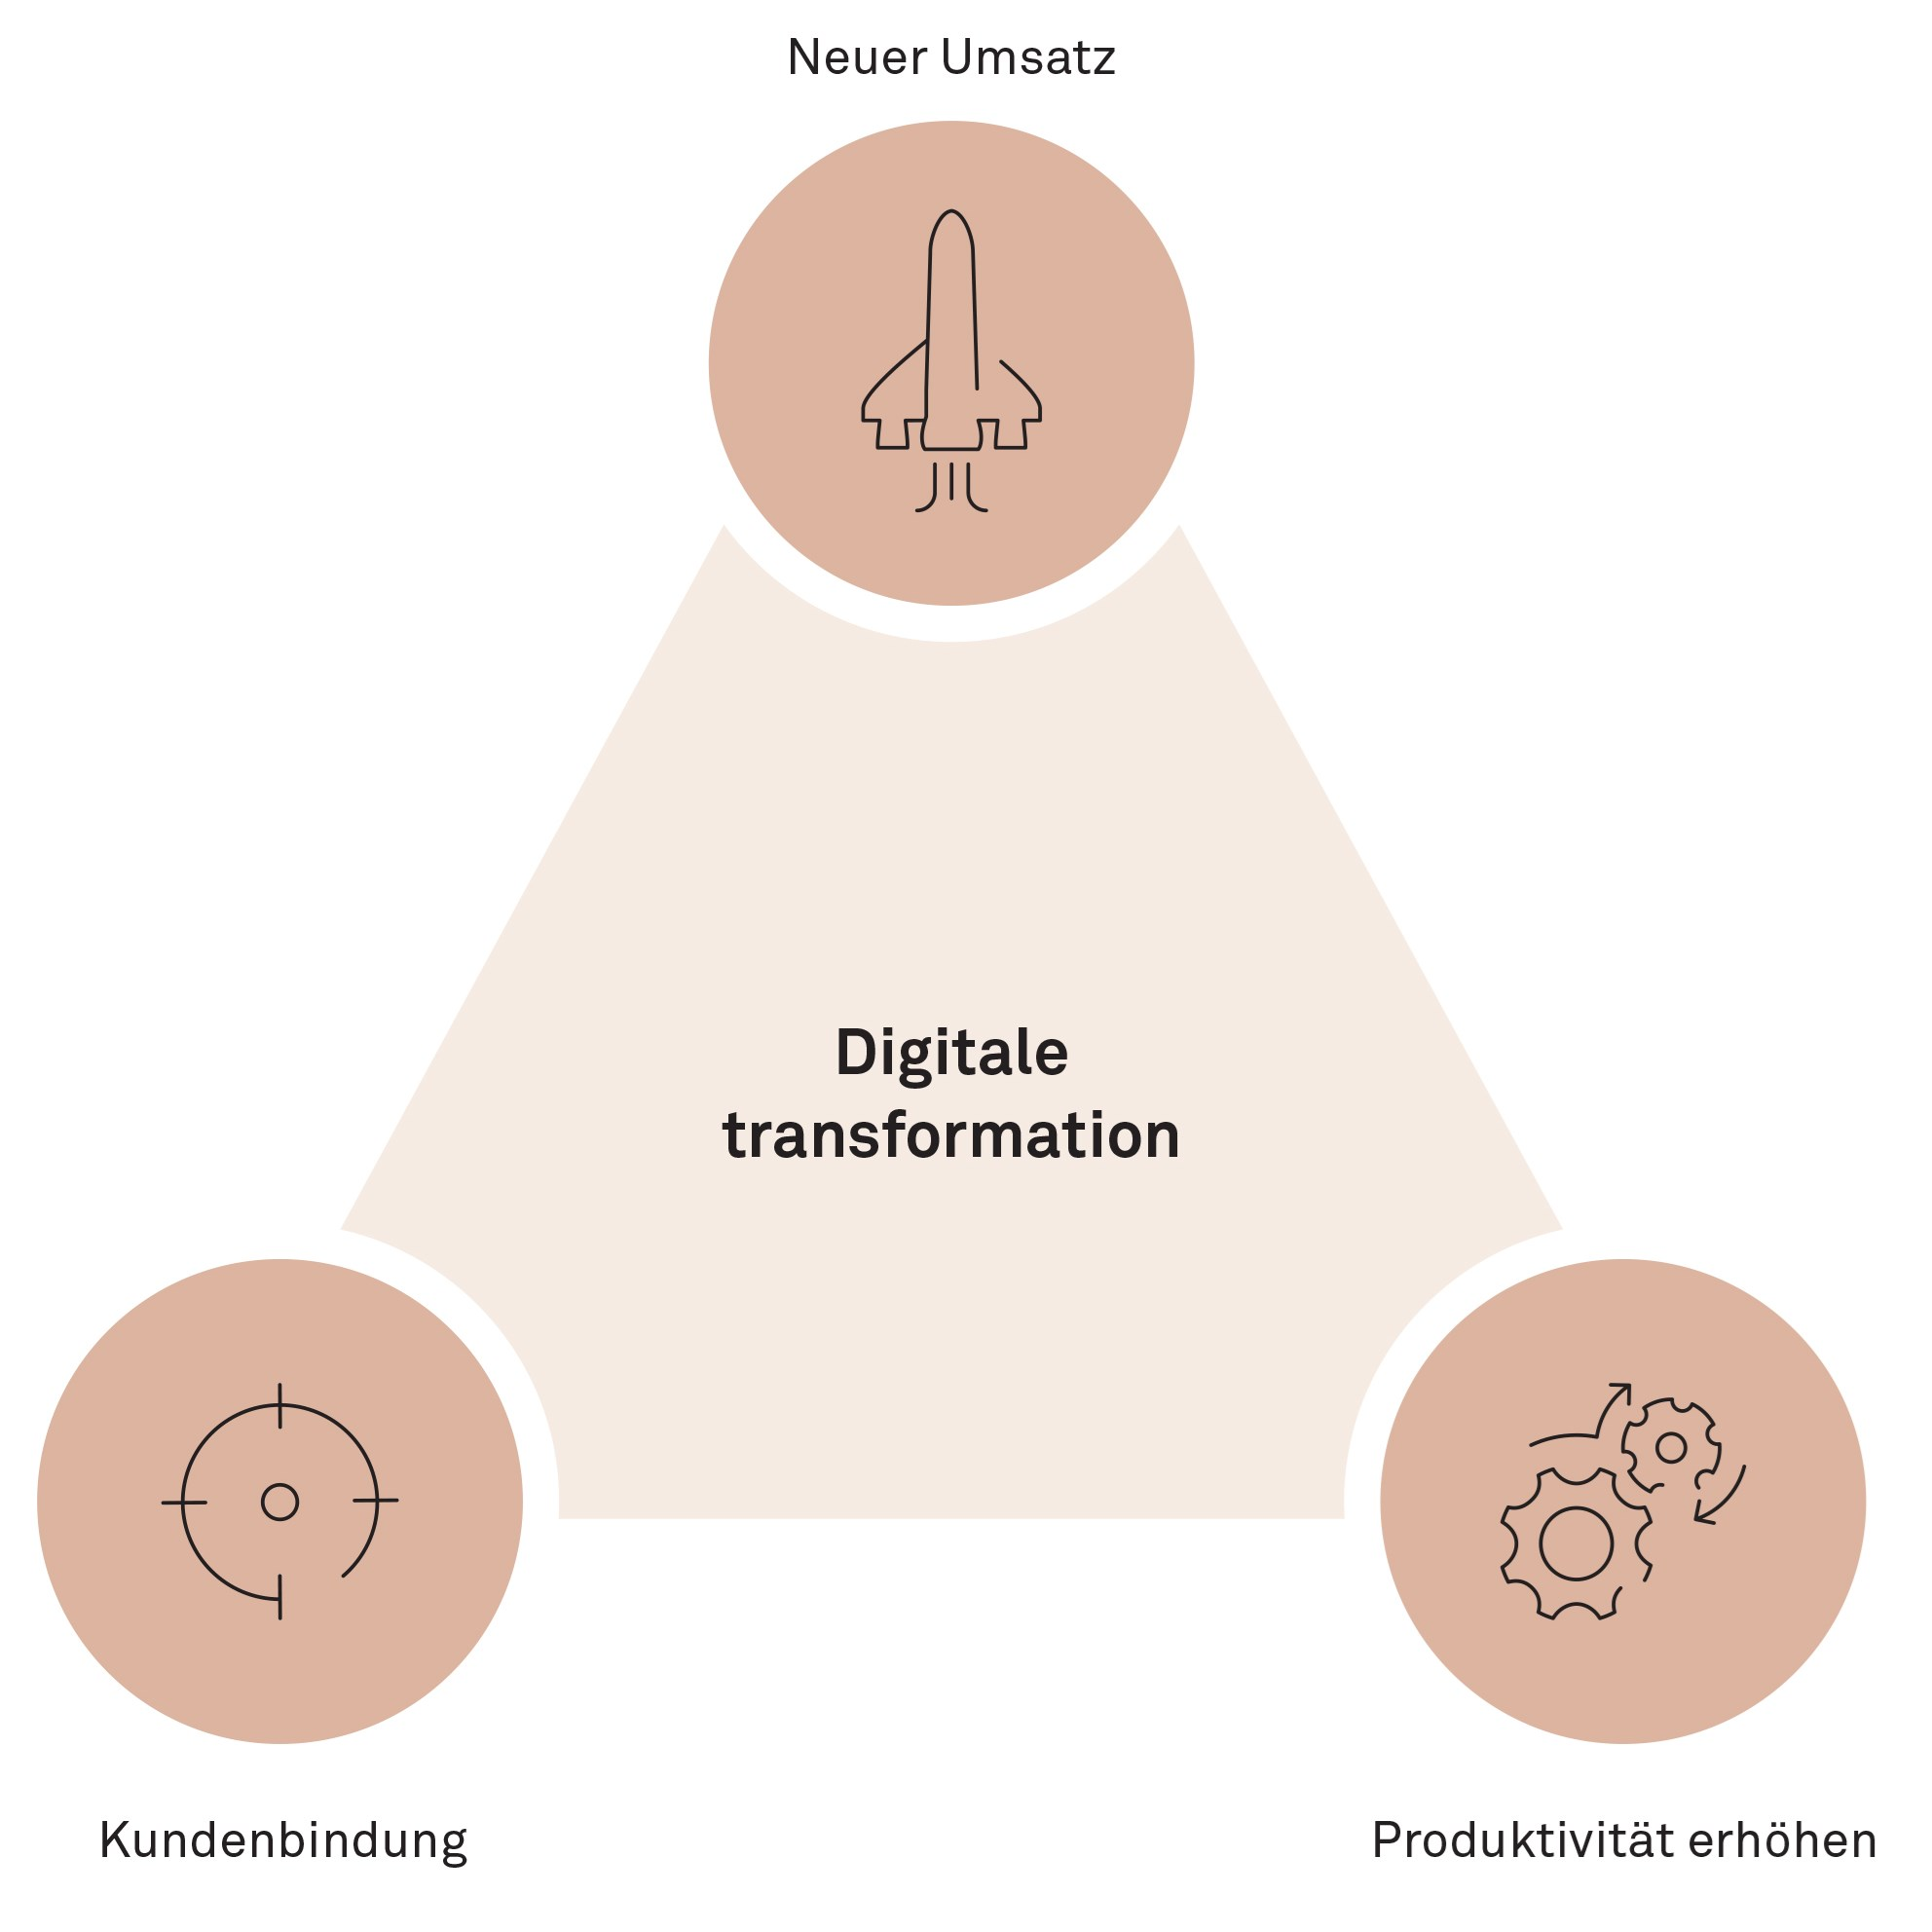 So bringer Sie ihre digitale Transformation in Gang